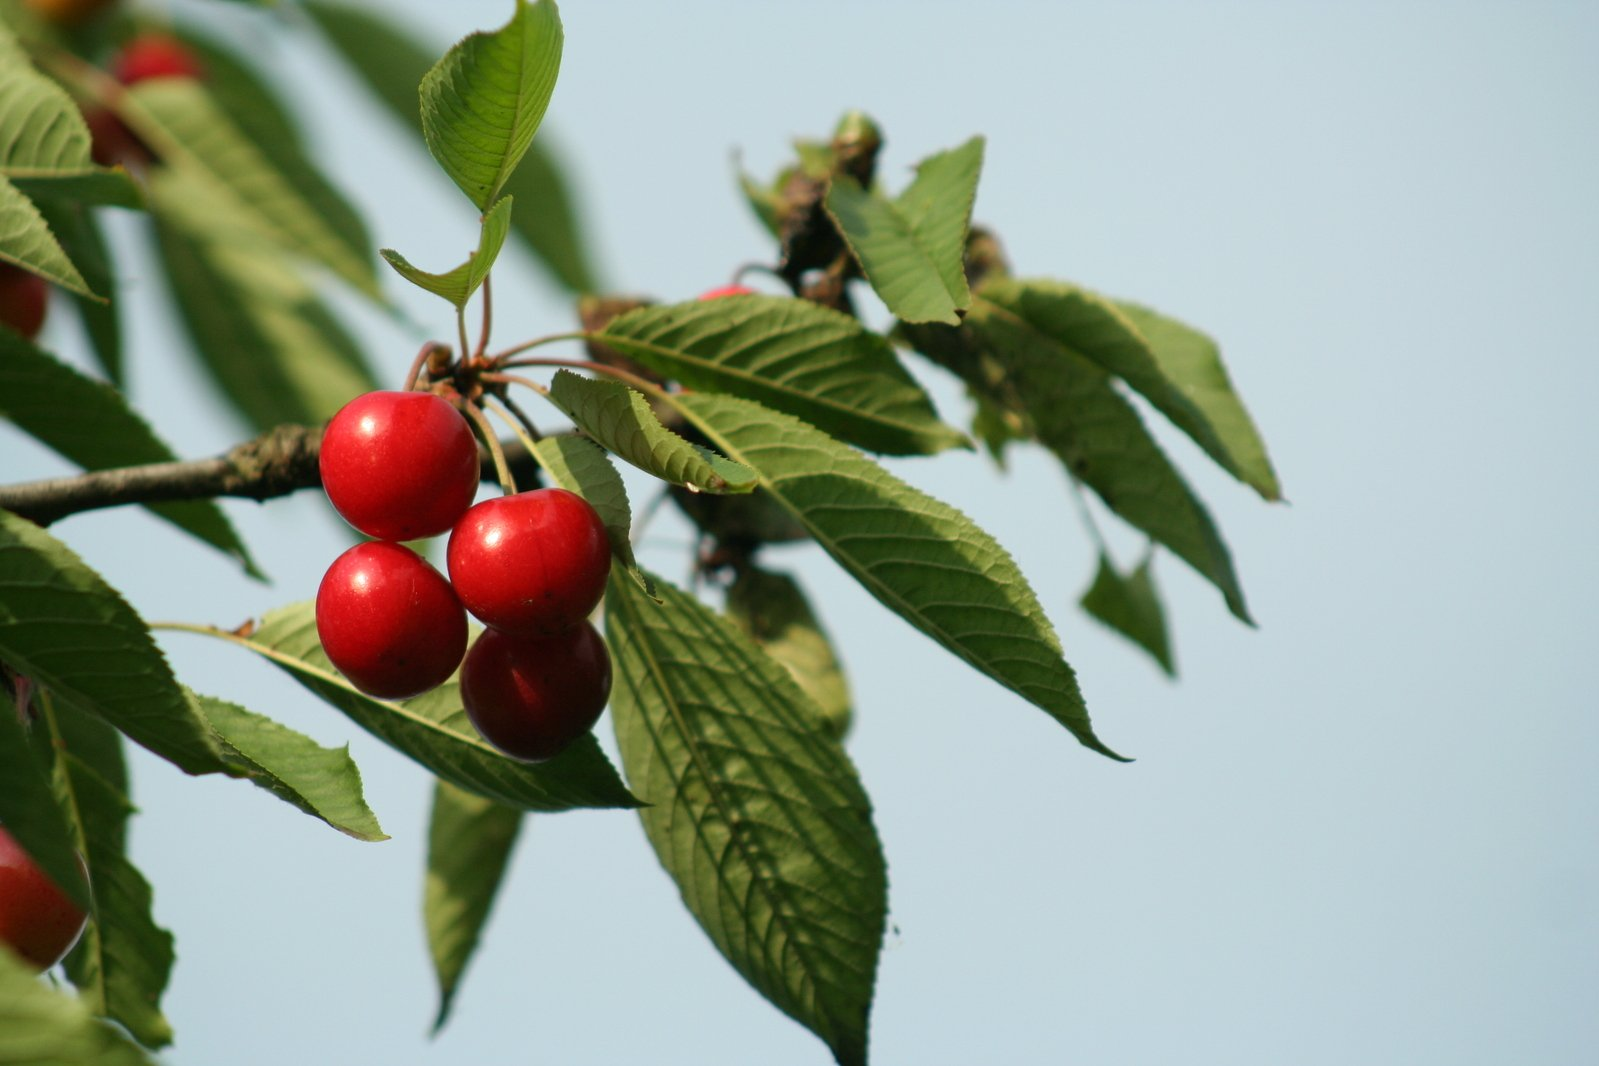 Free Sweetcherry Stock Photo Freeimages Com